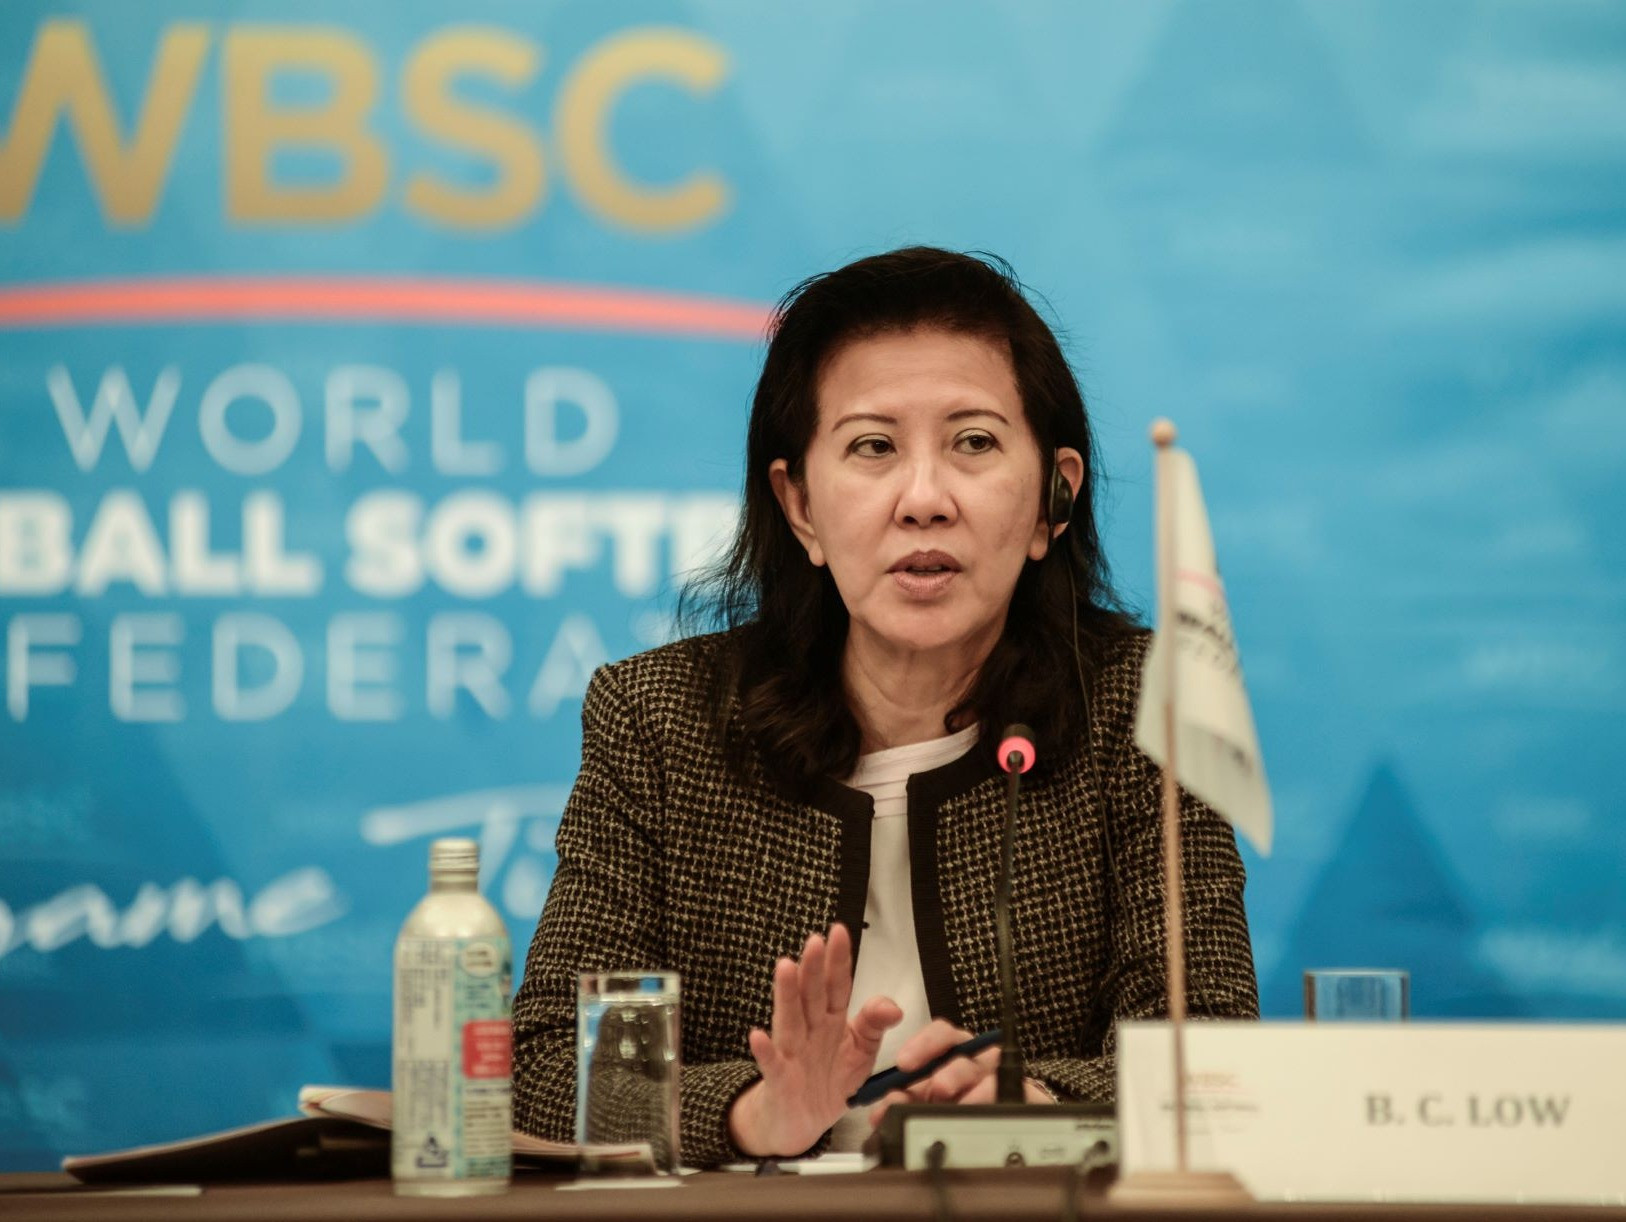 Beng Choo Low has praised the creation of the WBSC Integrity Unit in her latest message ©WBSC